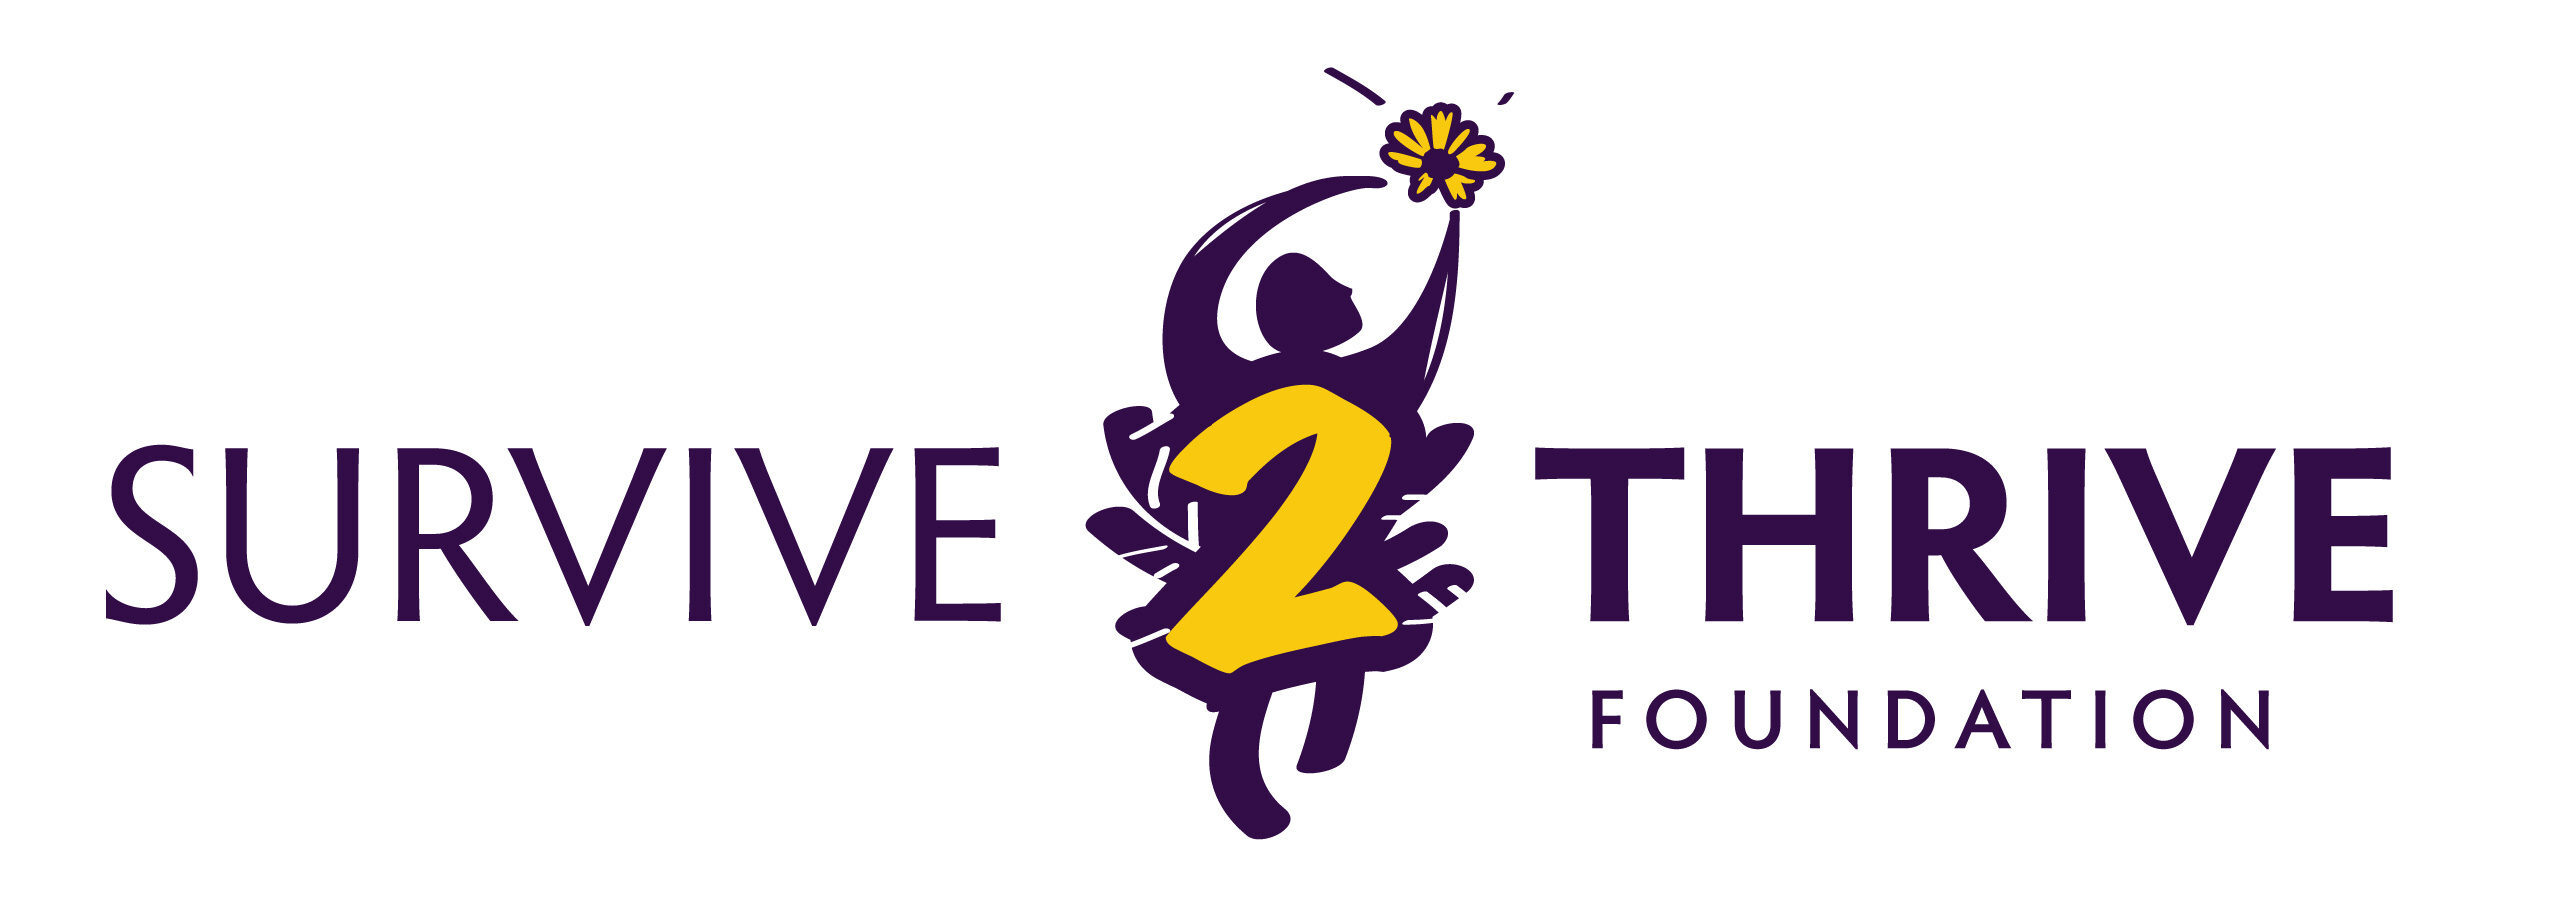 Survive2Thrive Foundation